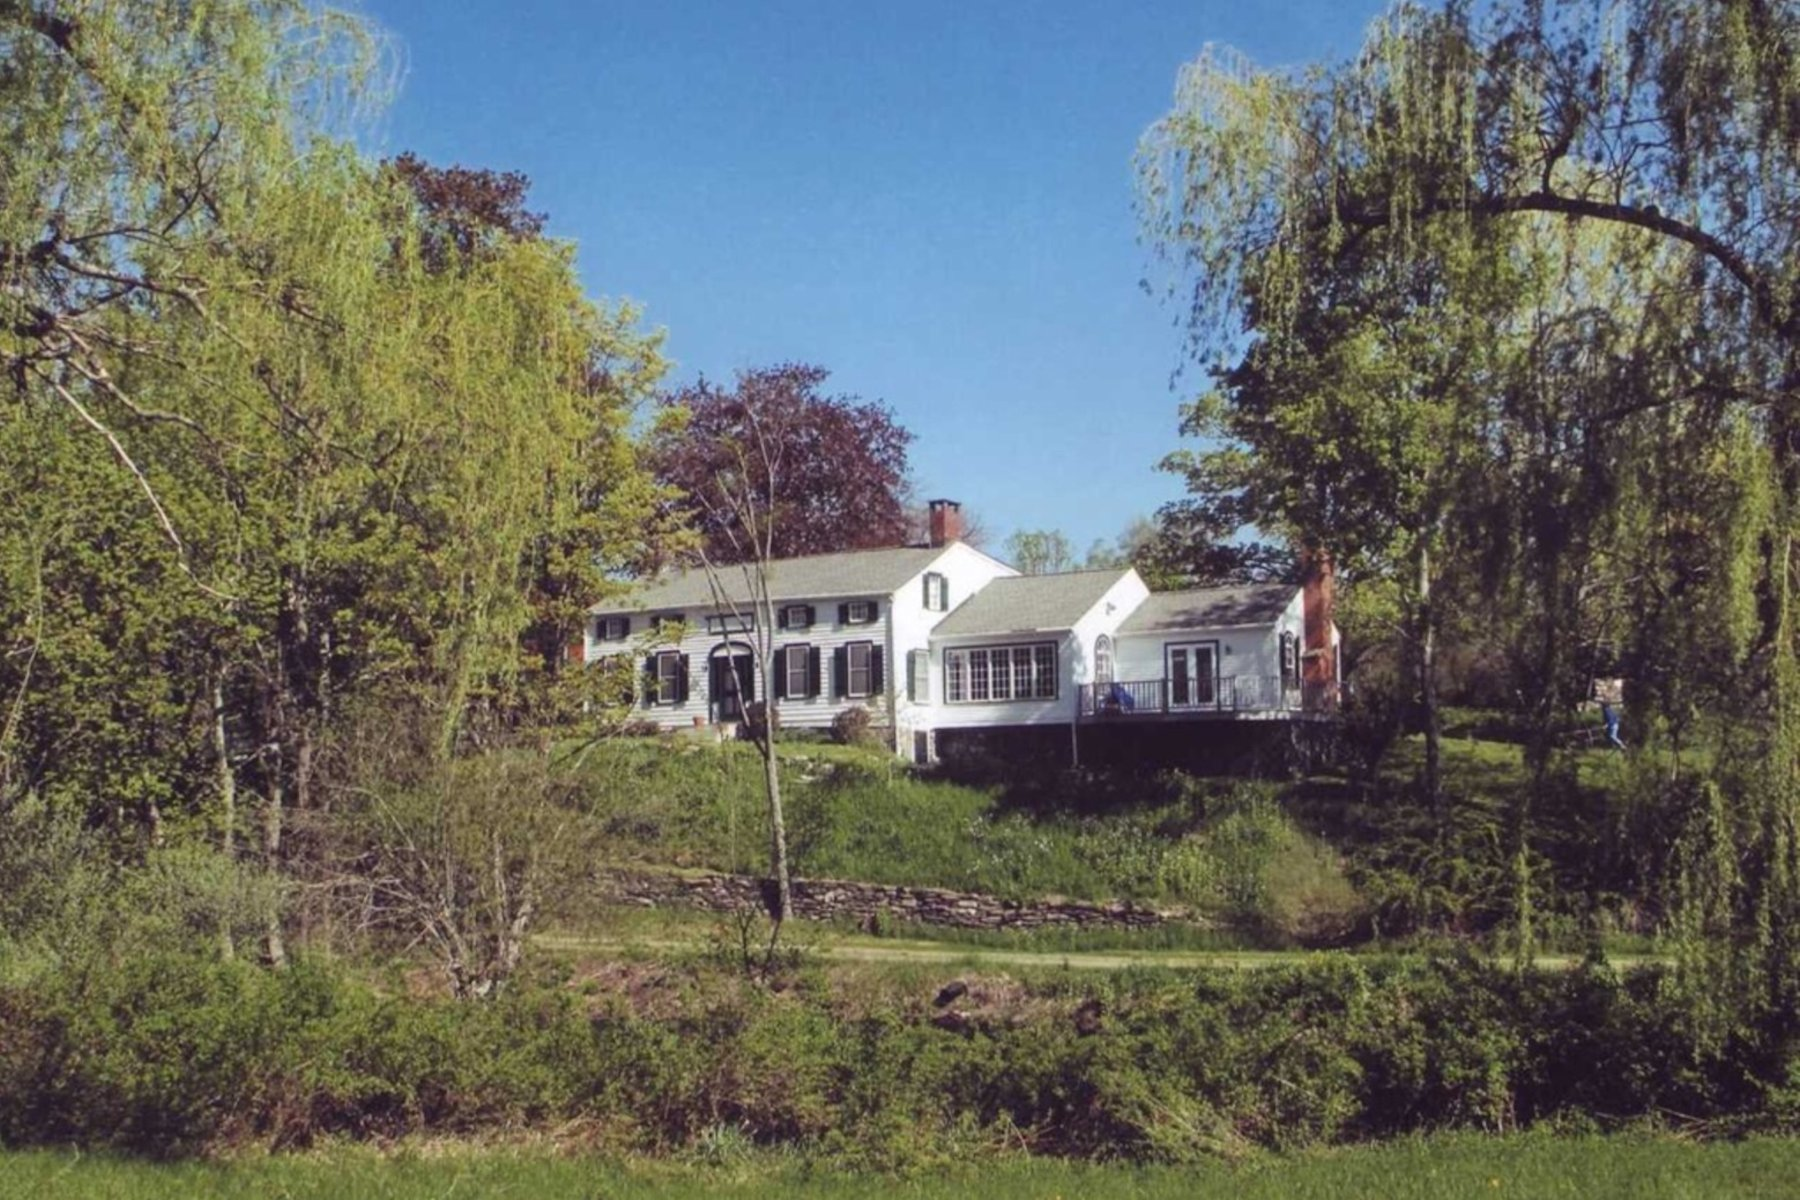 Single Family Home for Sale at Fishwoods Farm 140 Fishwoods Road Milan, New York 12571 United States